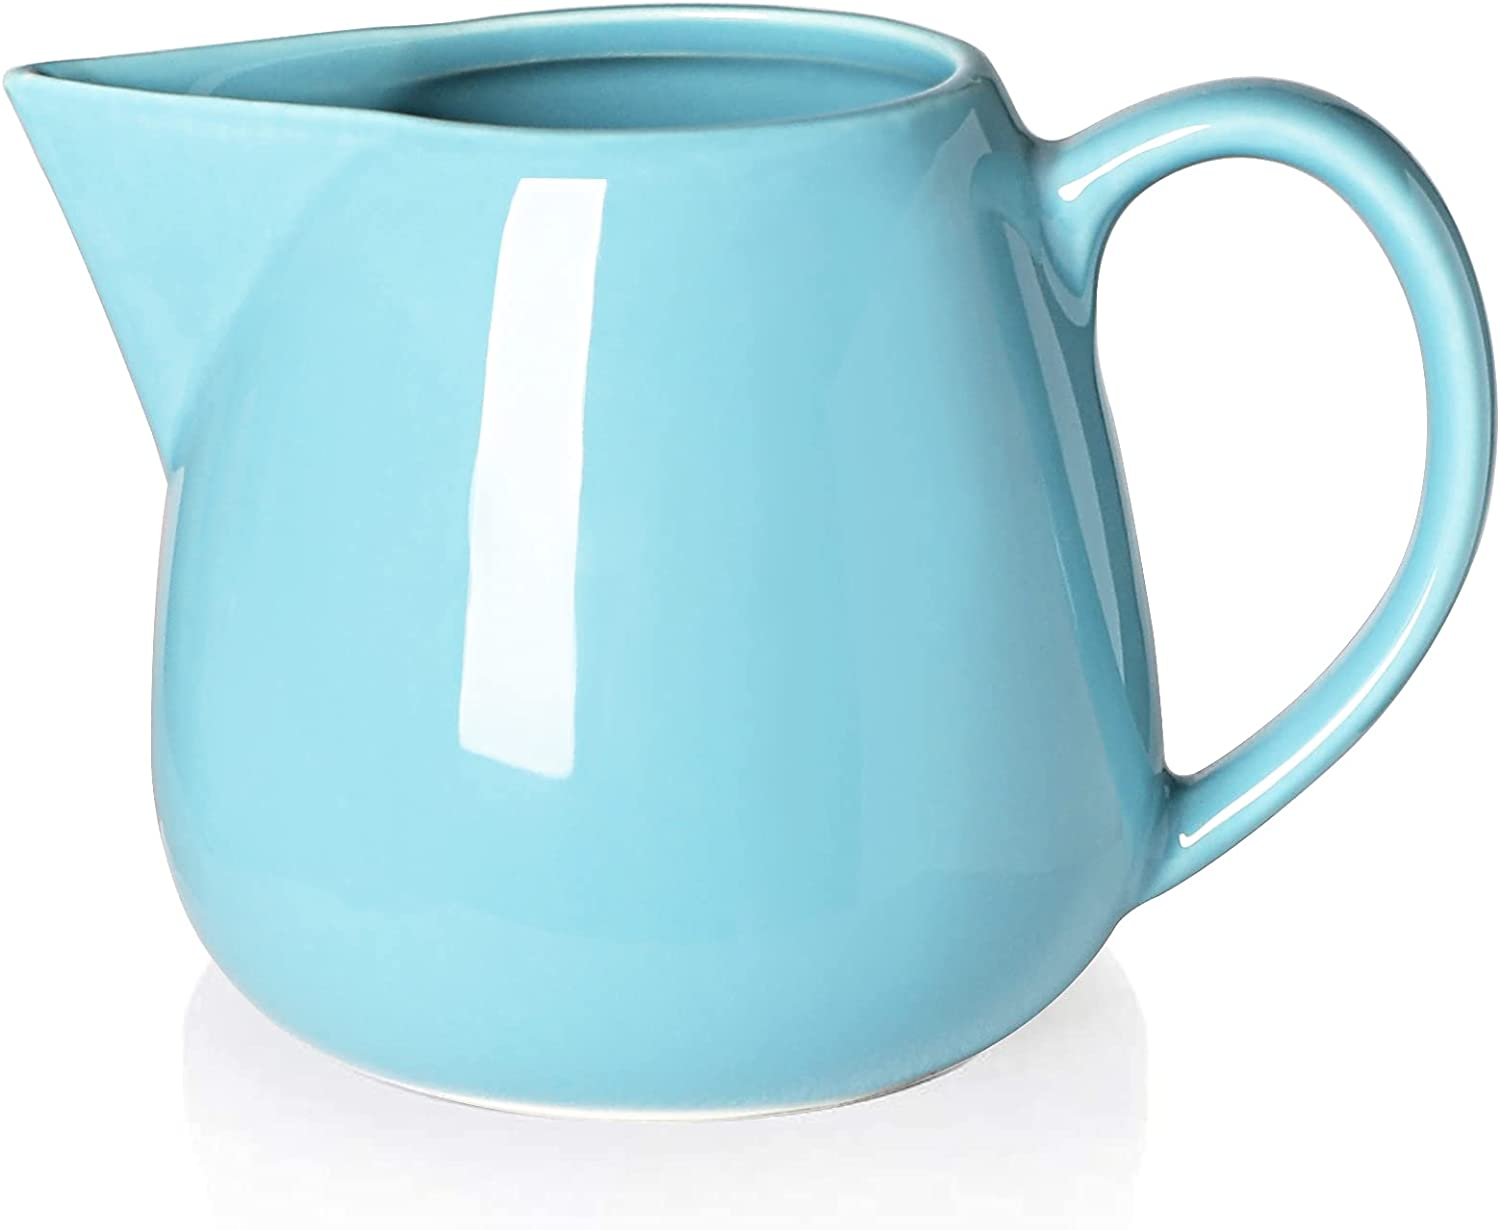 ONTUBE Ceramics Creamer Our shop OFFers the best service It is very popular Pitcher 12 Blue Cream Turquoise oz